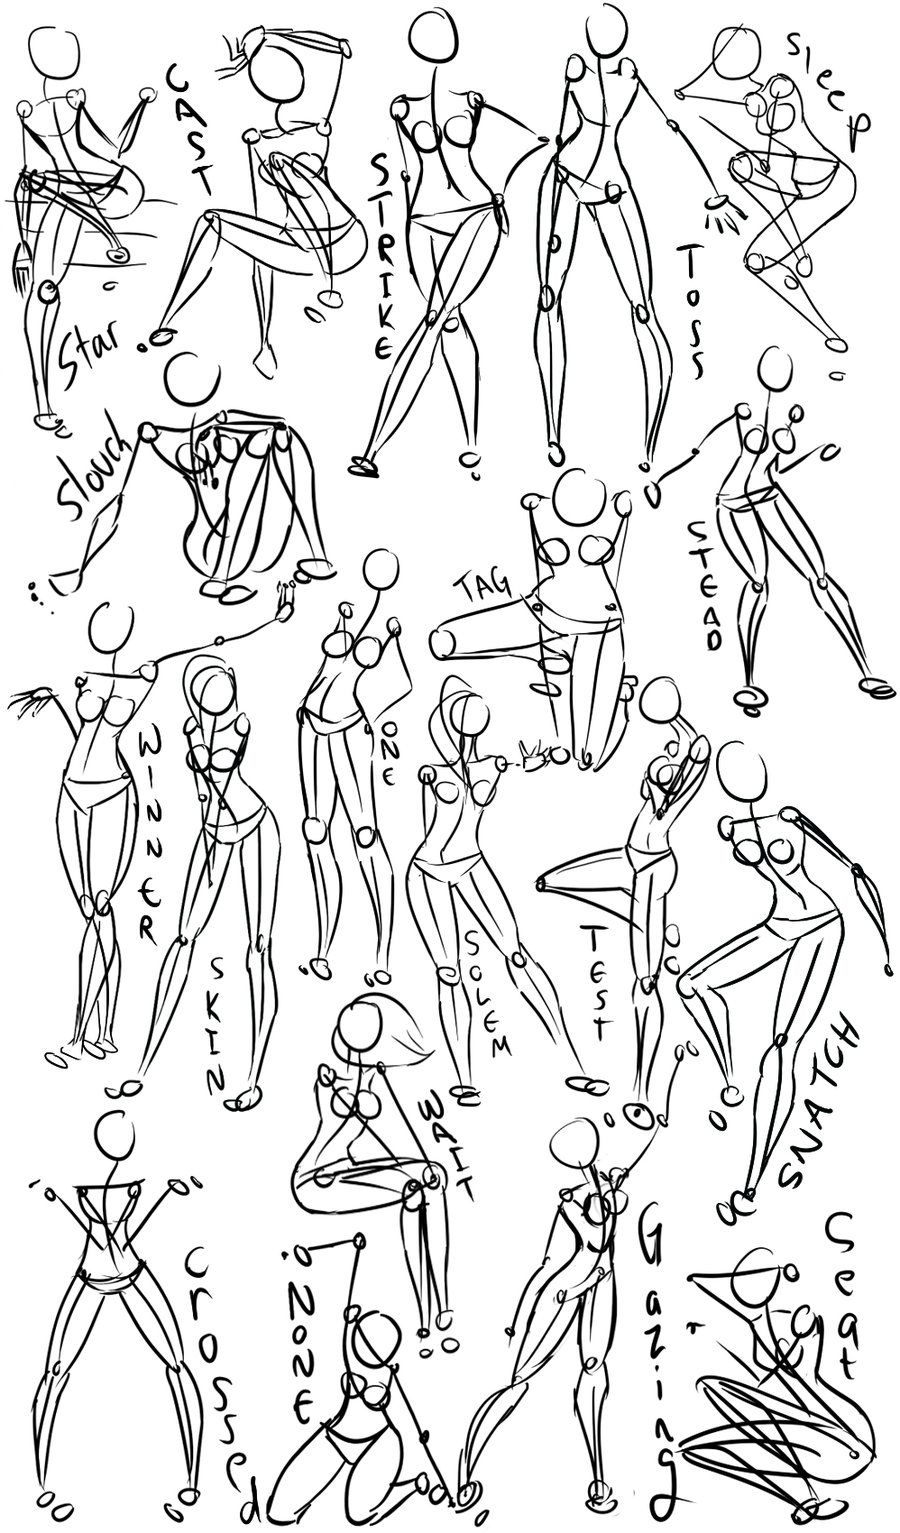 Pin by Mar Rodriguez on Anatomy/Poses | Pinterest | Female power ...